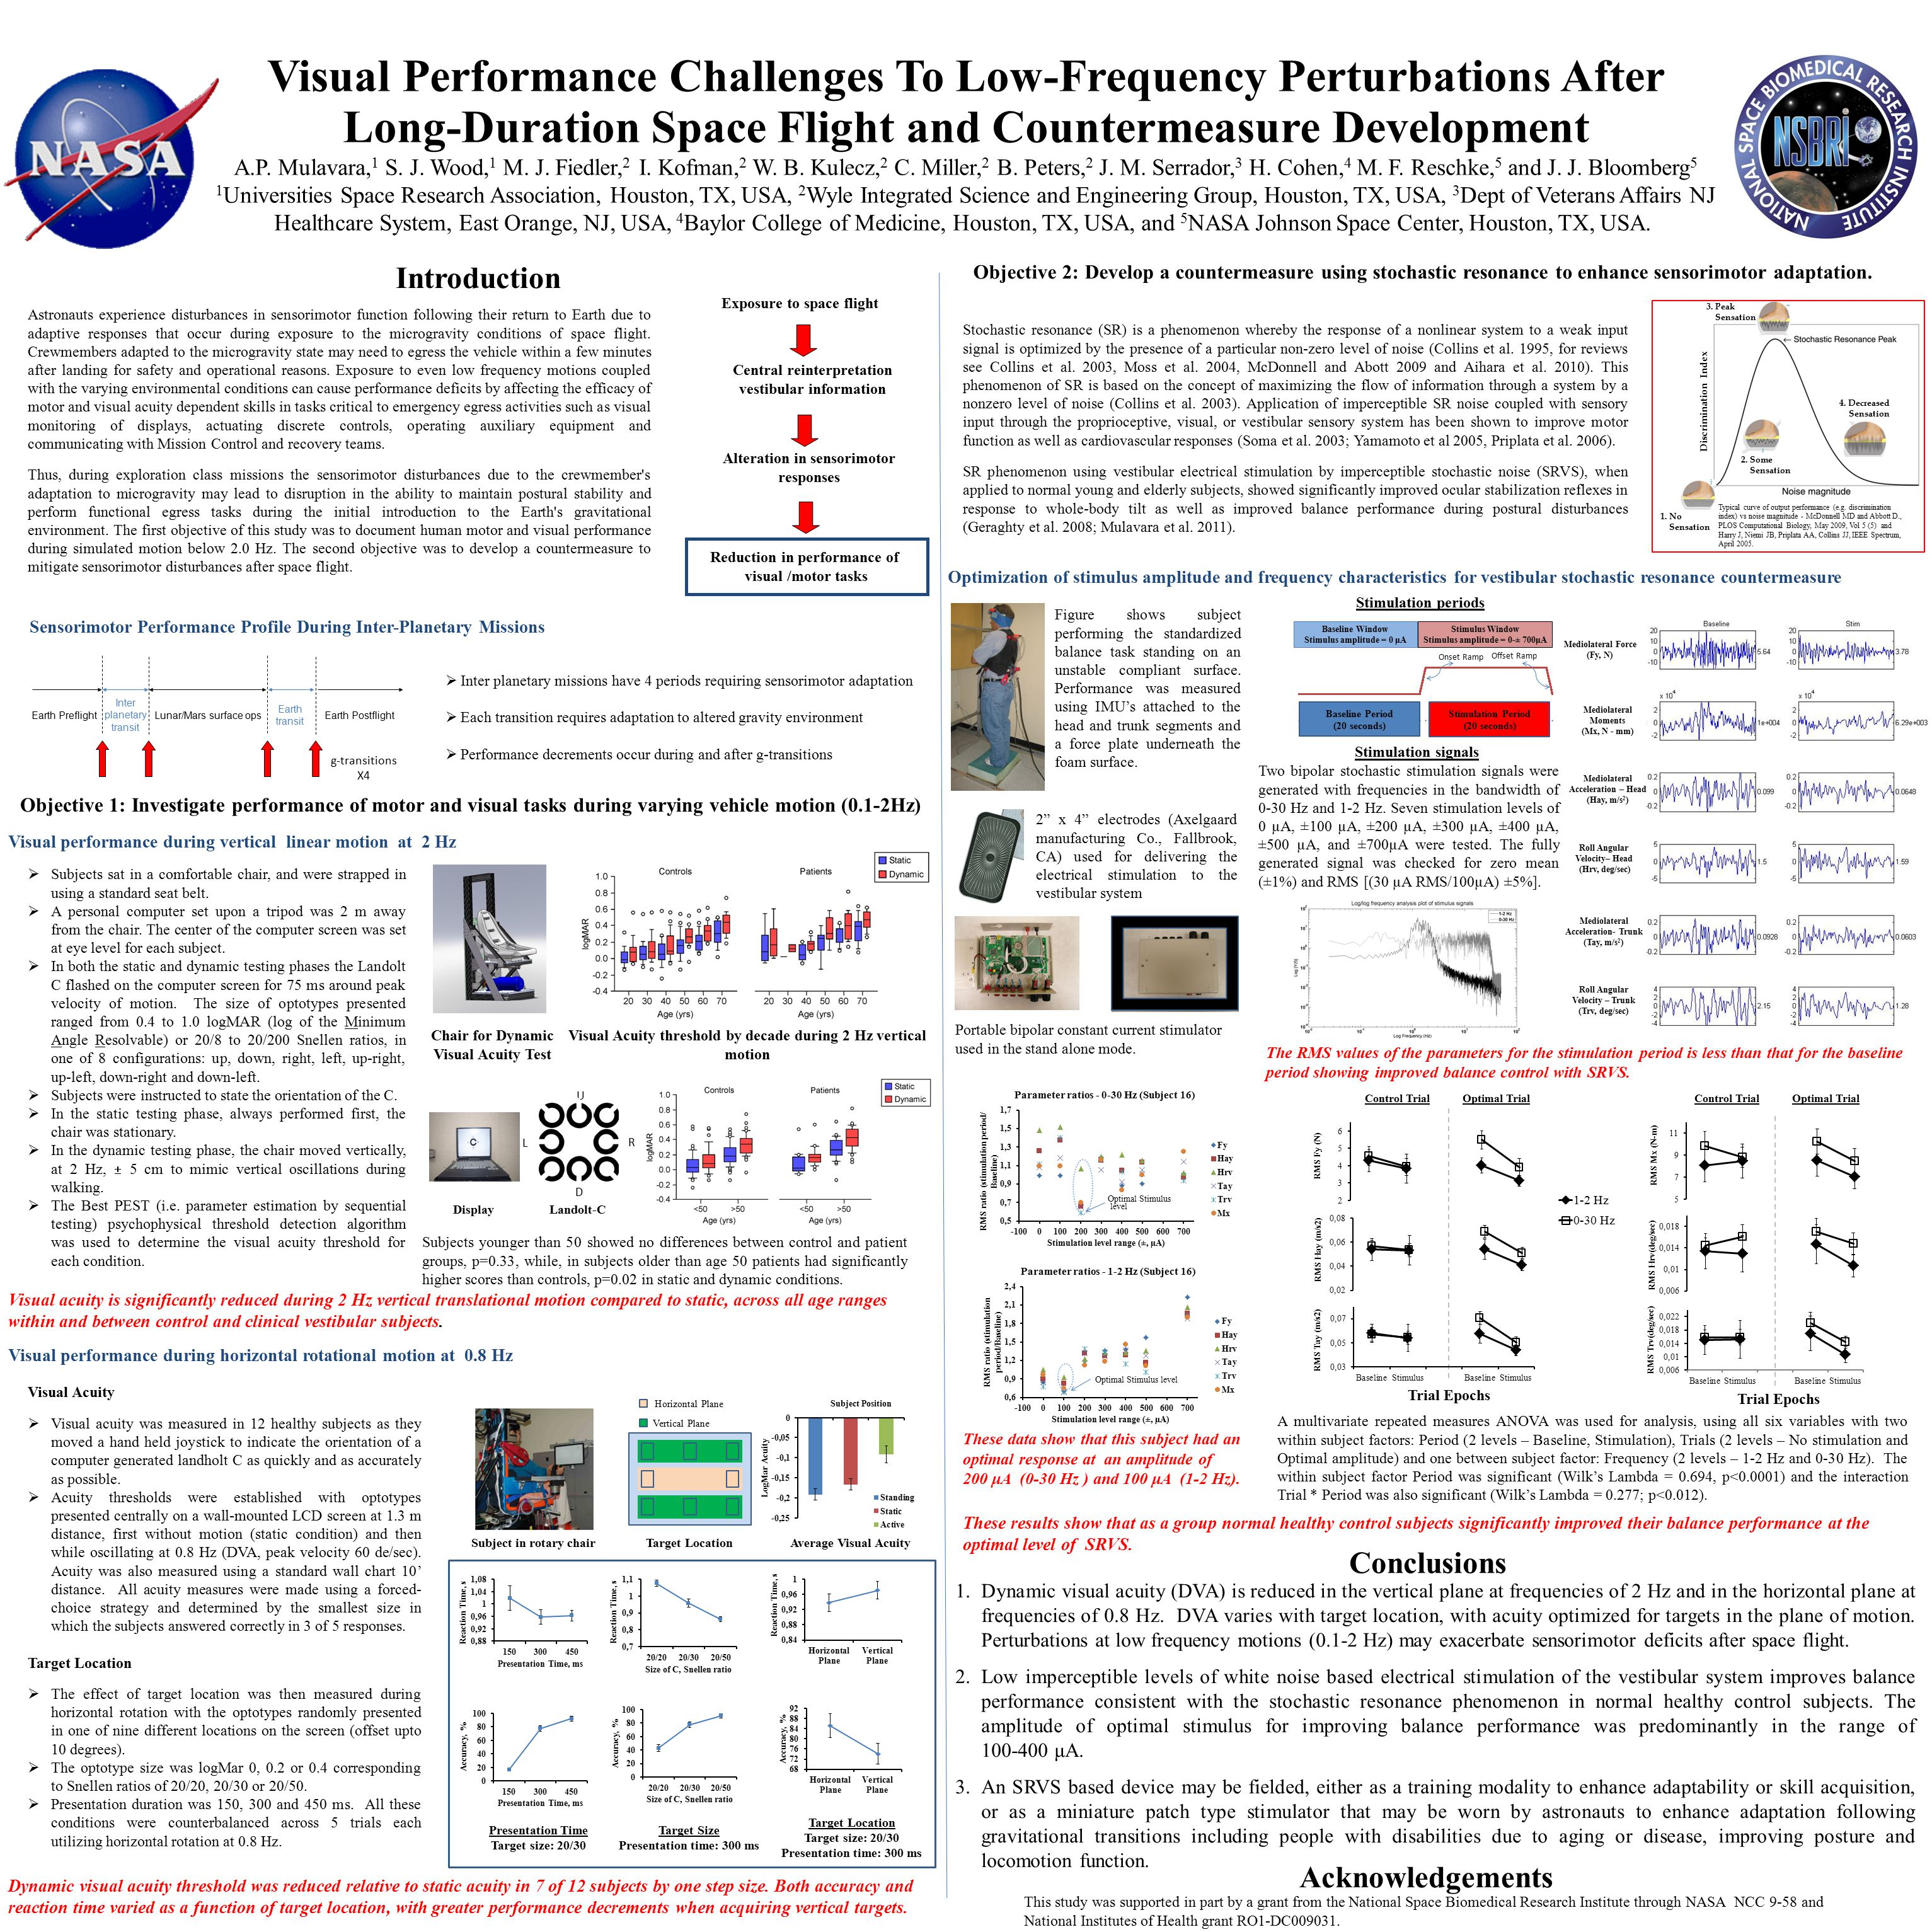 Visual Performance Challenges To Low-Frequency Perturbations After Long-Duration Space Flight and Countermeasure Development A.P.